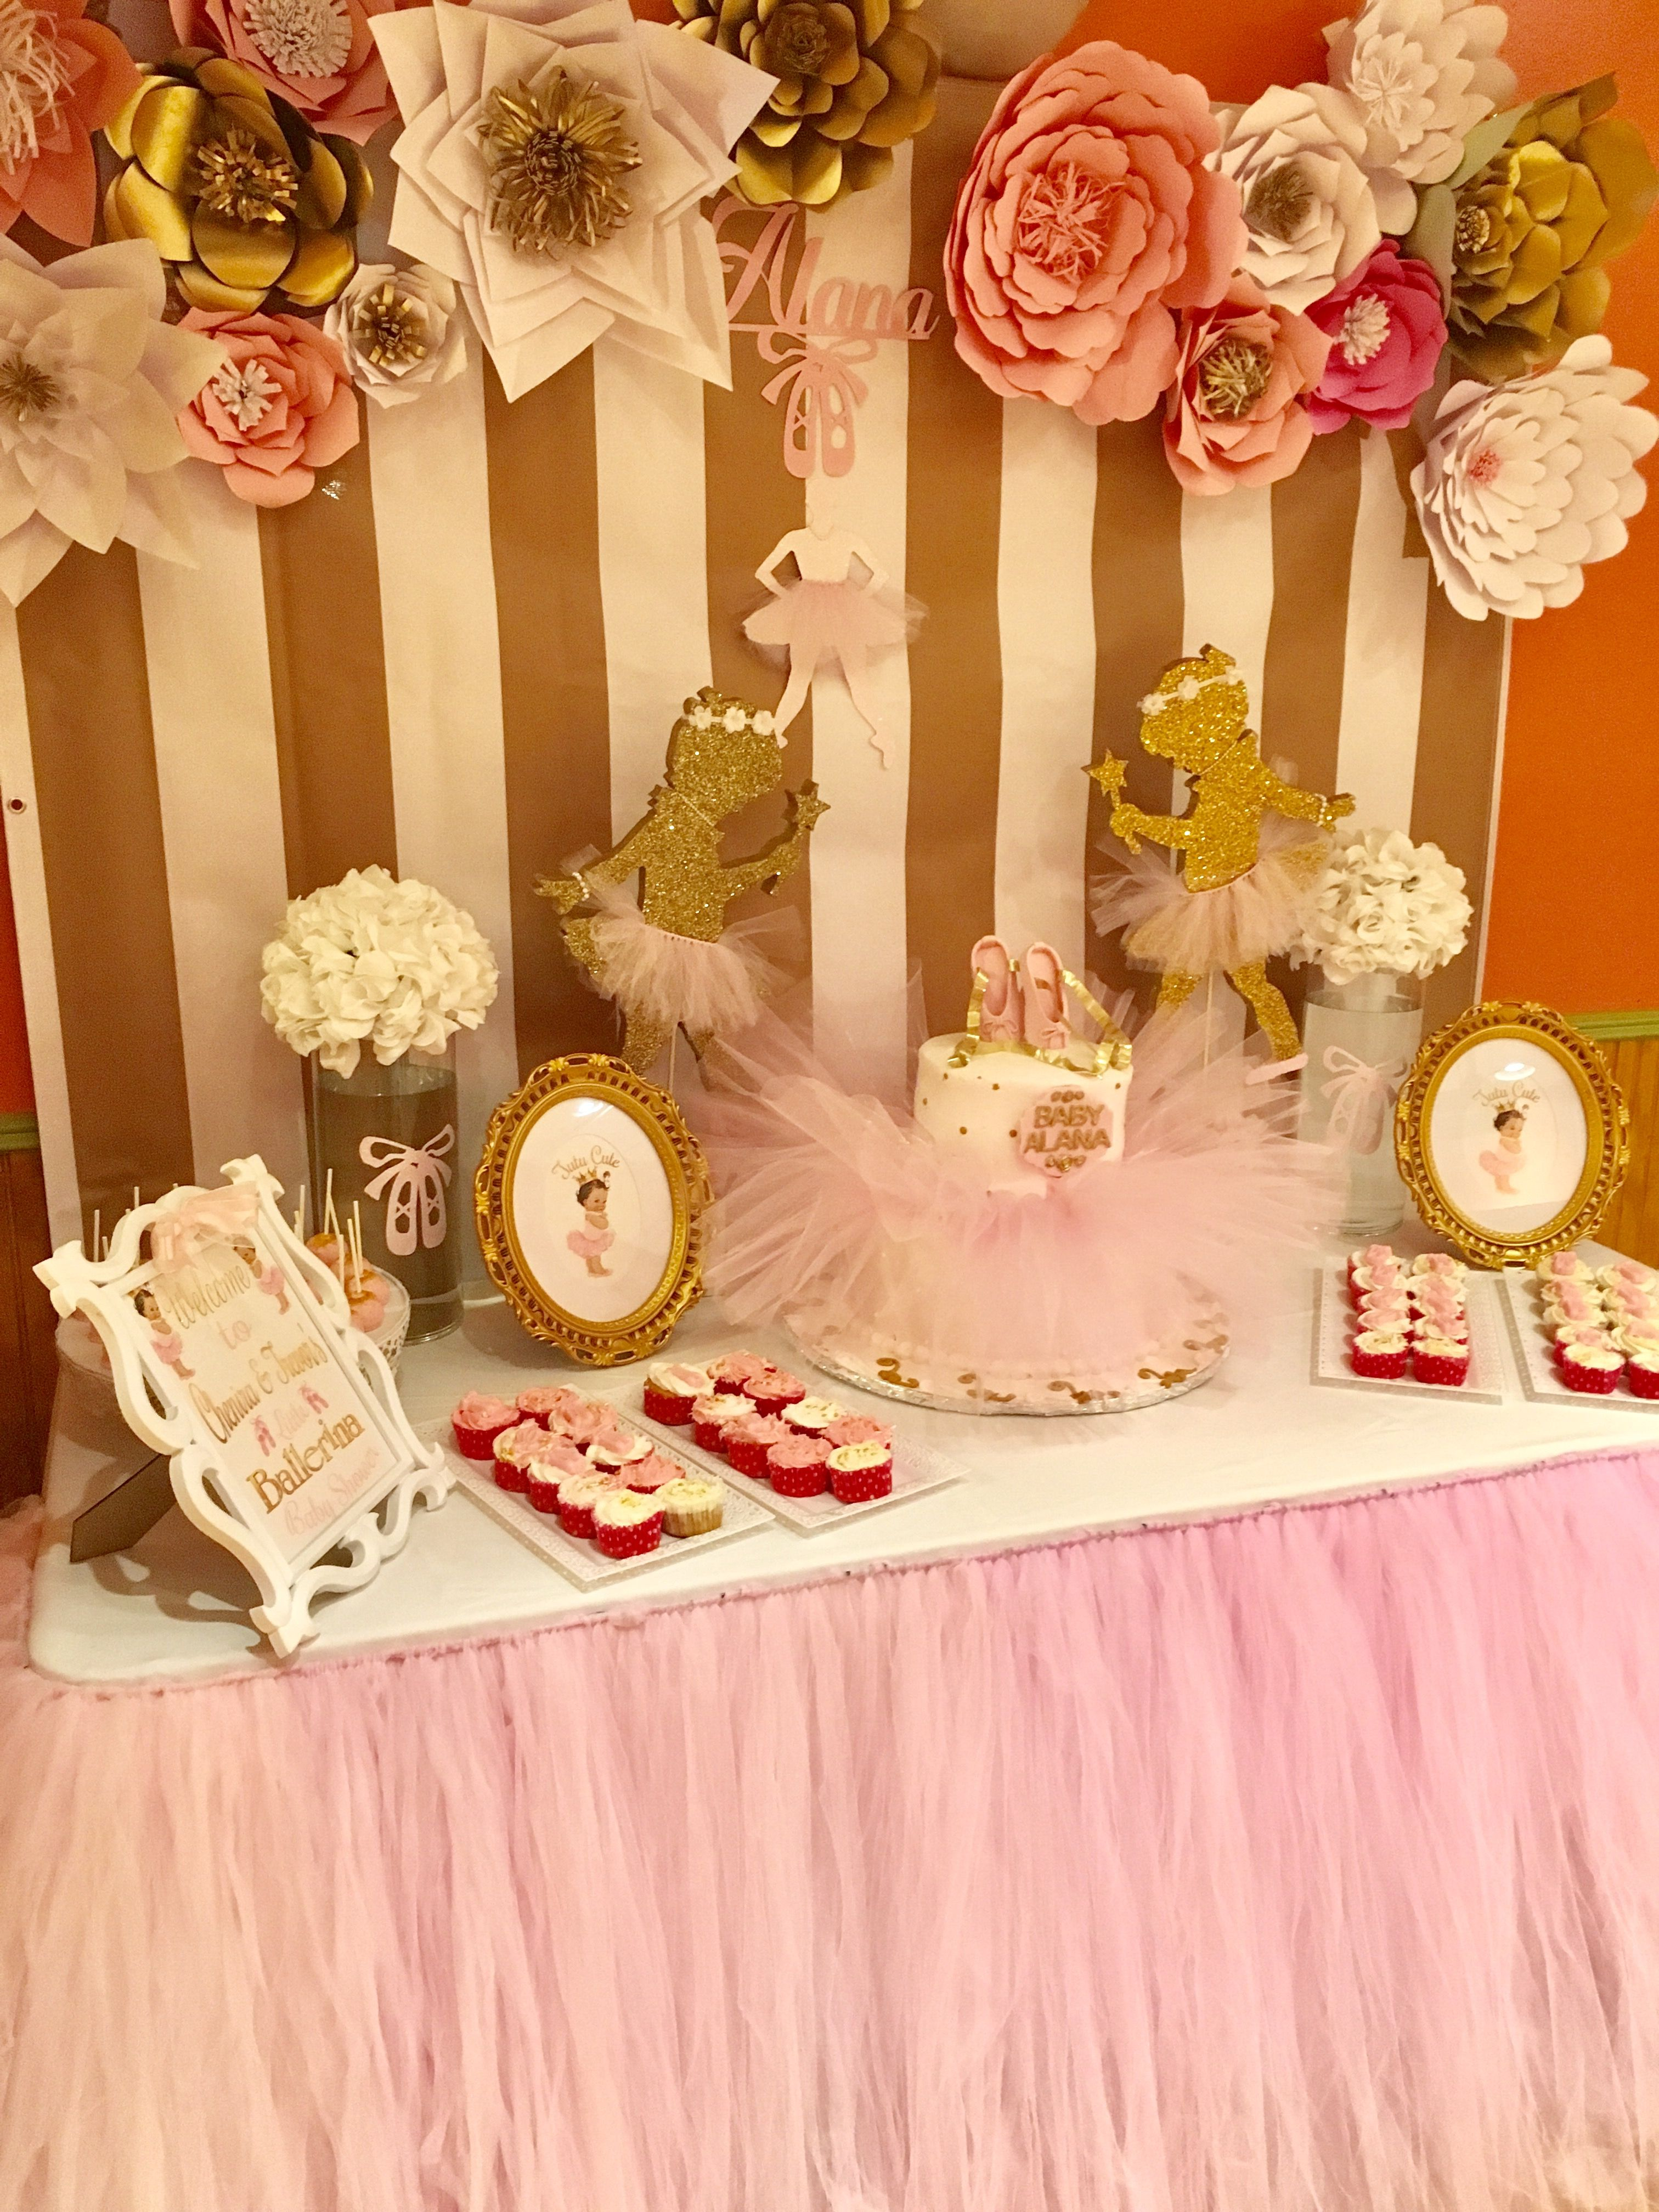 Ballerina Themed Baby Shower Cake Table With A Tutu Skirt And Paper Flow Baby Shower Cake Table Cake Table Decorations Baby Shower Ballerina Baby Shower Theme